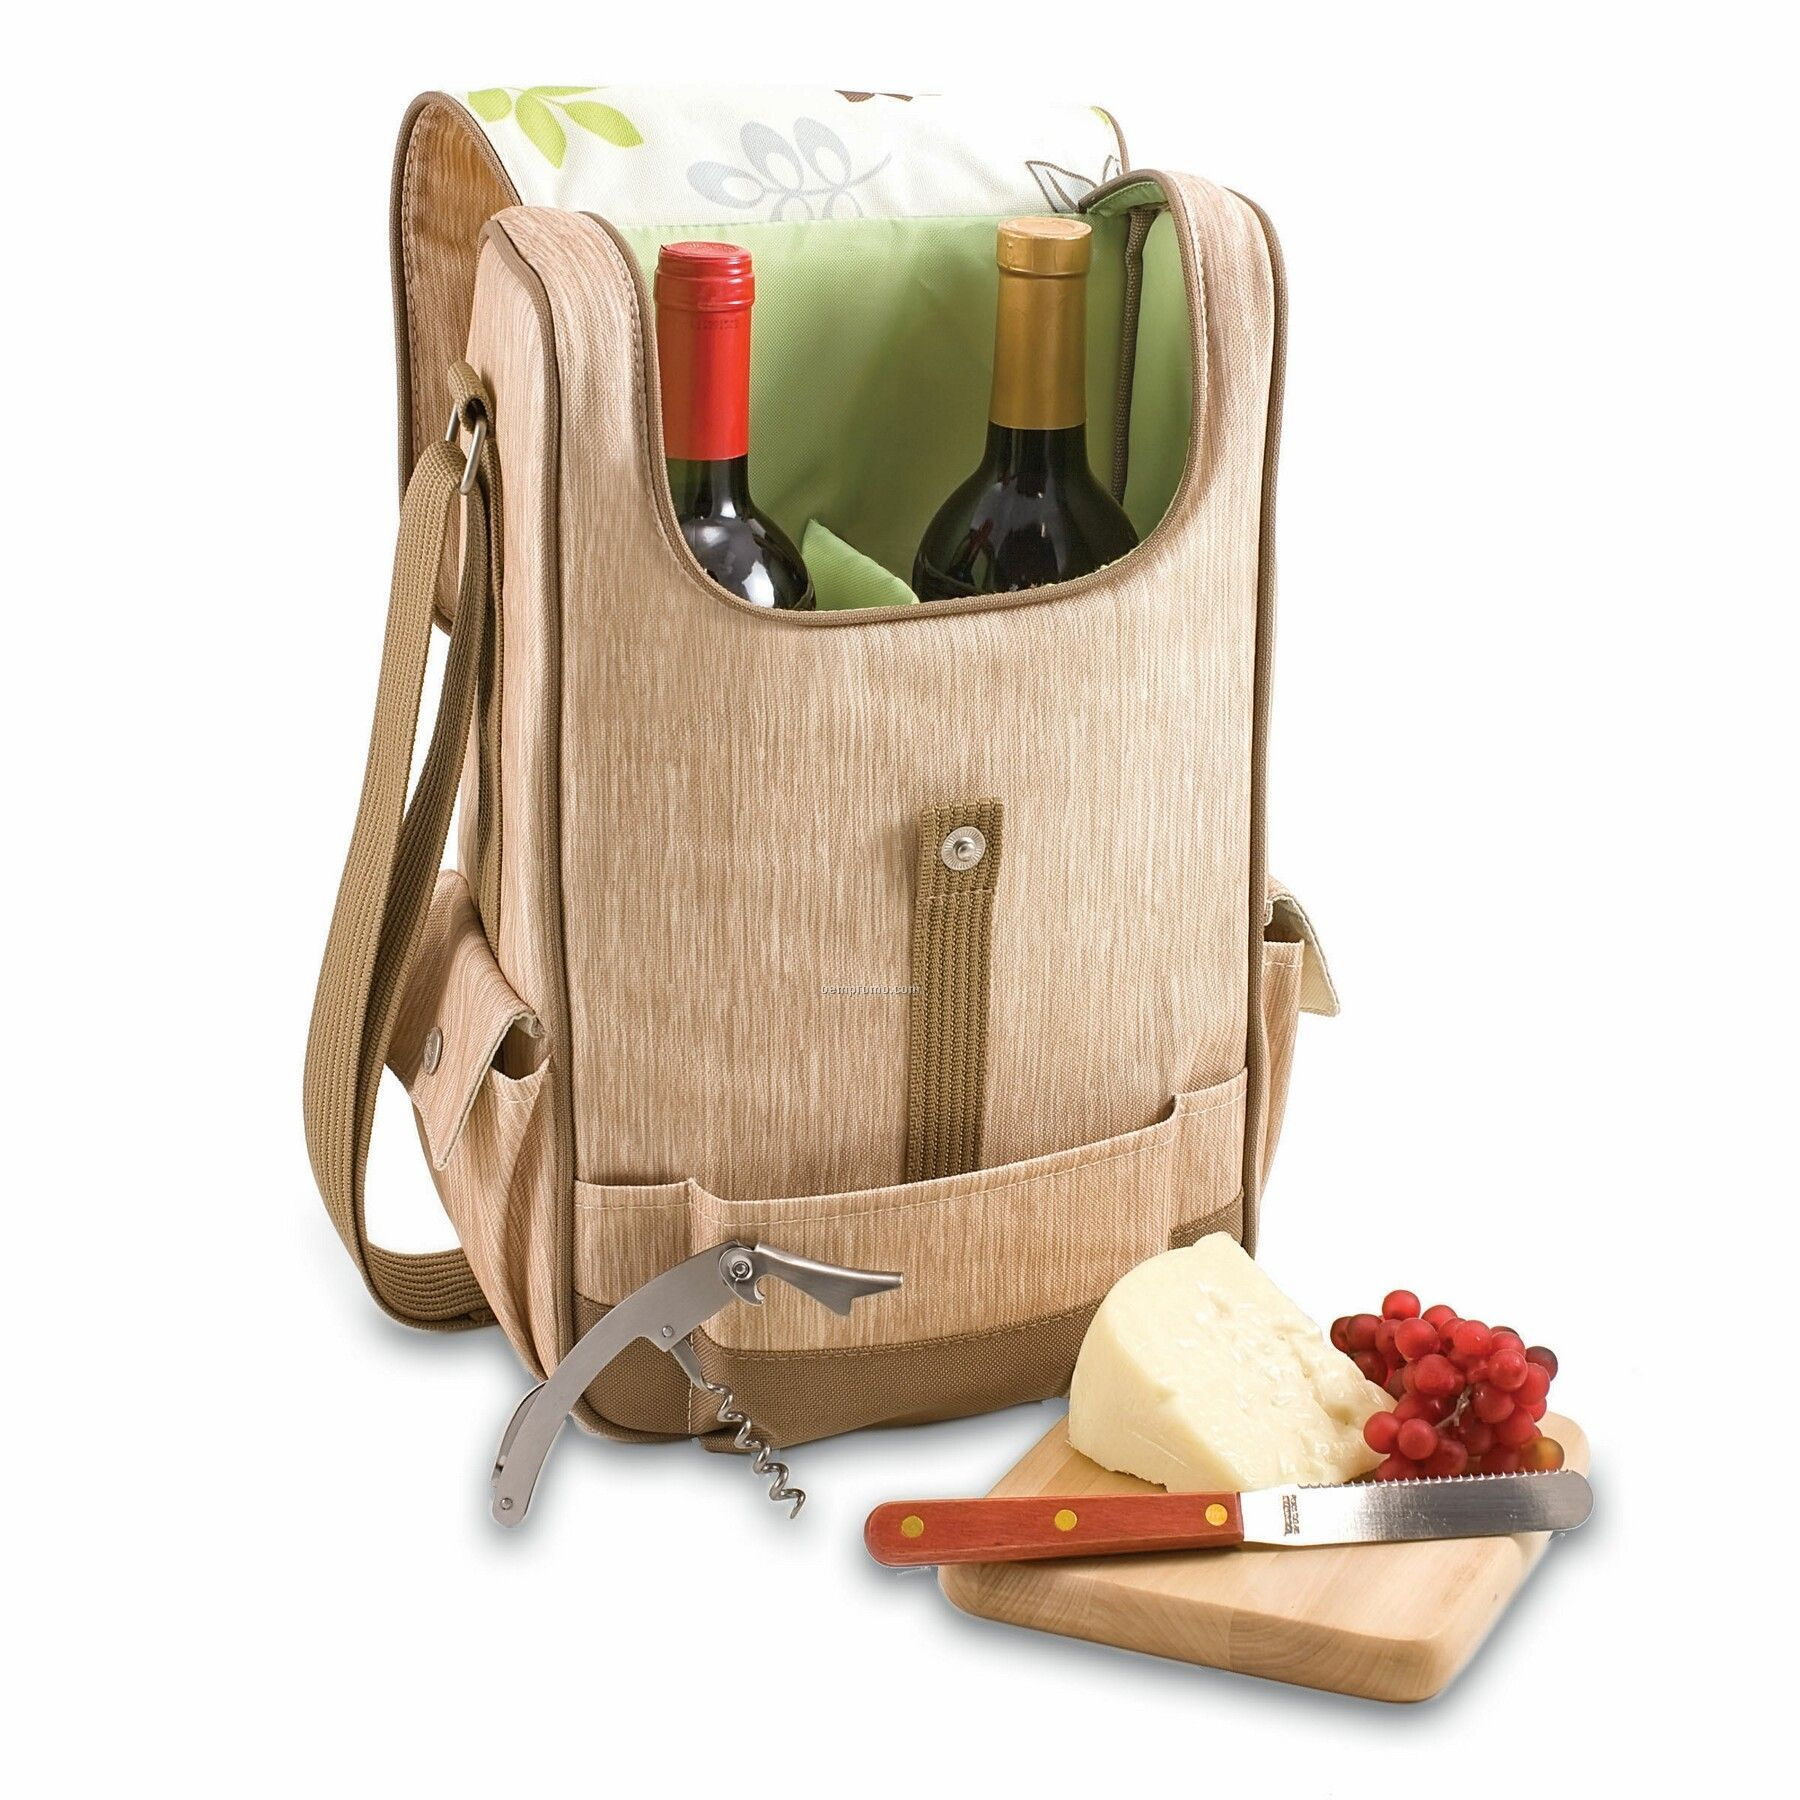 Volare Botanica Wine & Cheese Tote Bag W/ Floral Trim (2 Bottle)